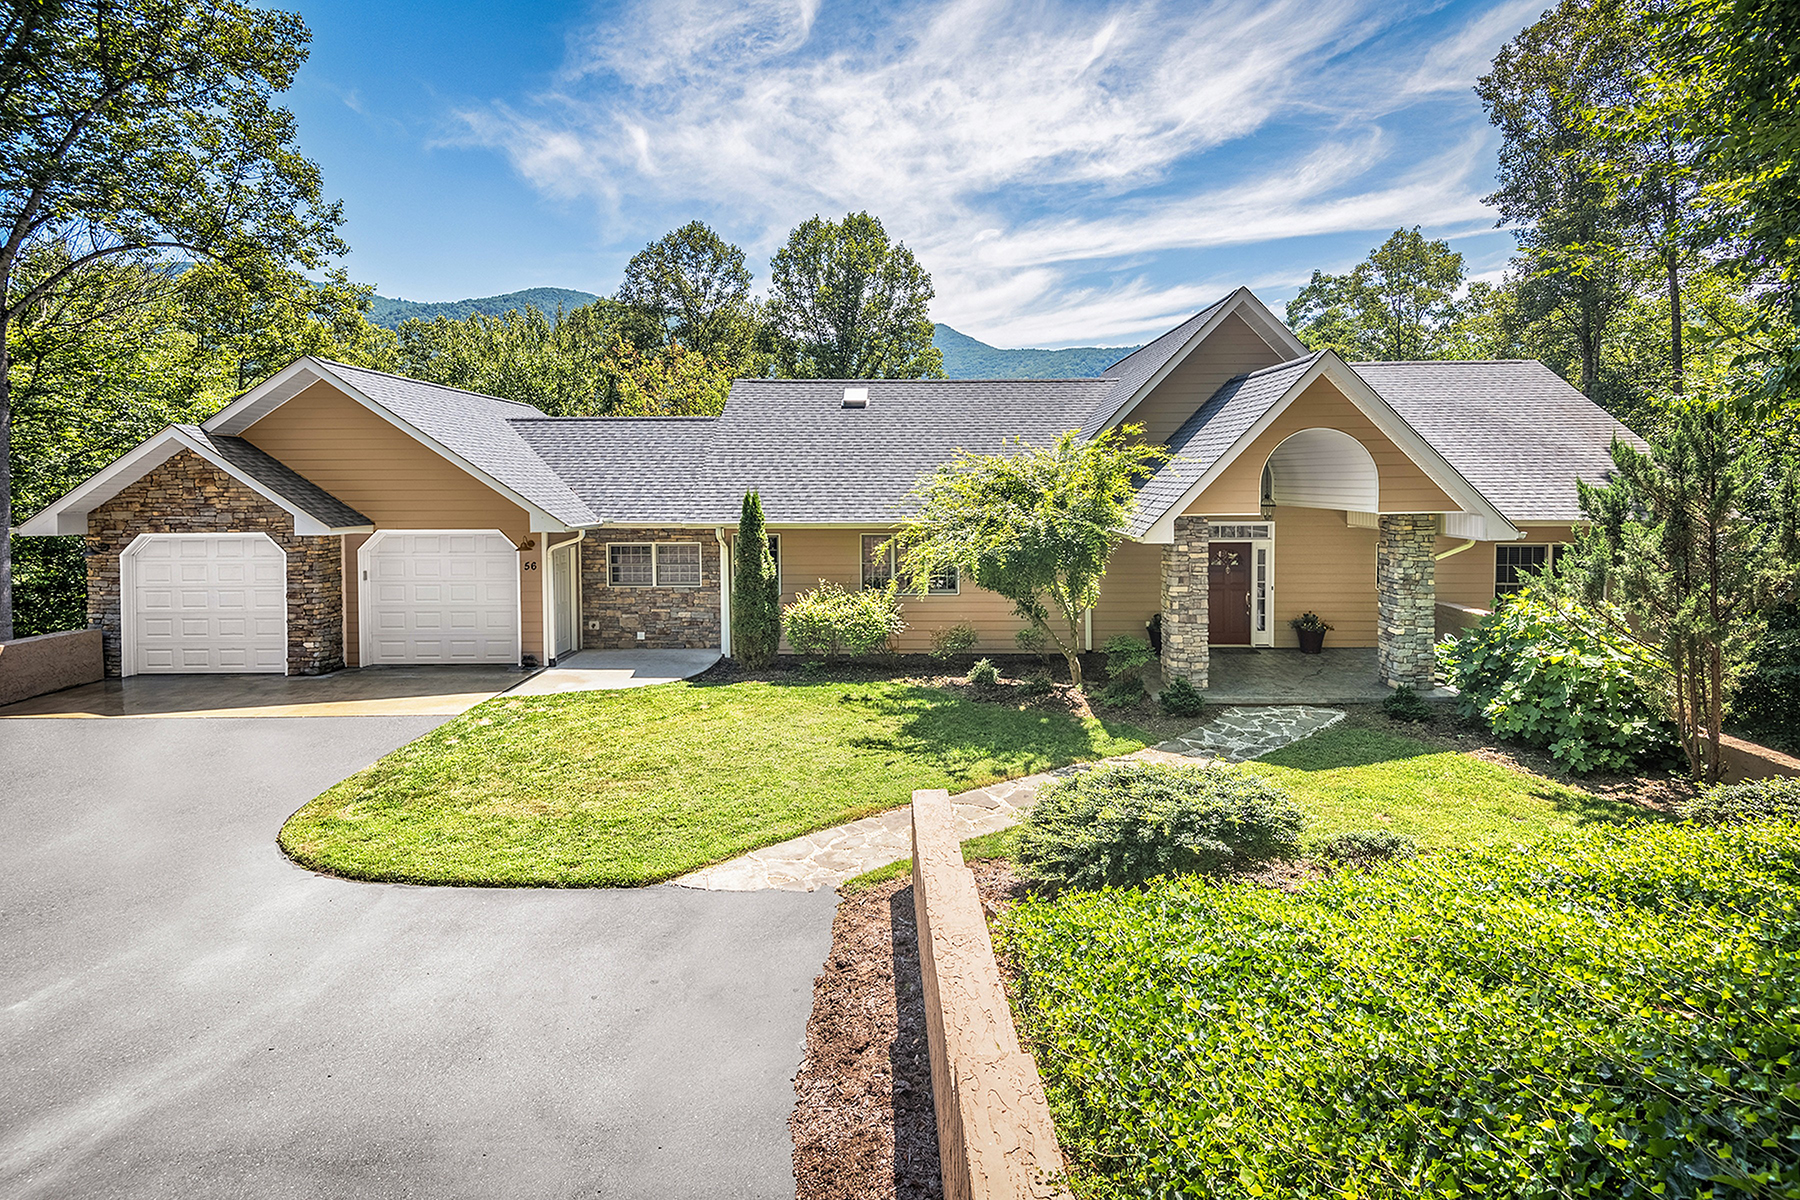 Single Family Homes for Active at OXBOW CROSSING 56 Oxbow Xing Weaverville, North Carolina 28787 United States